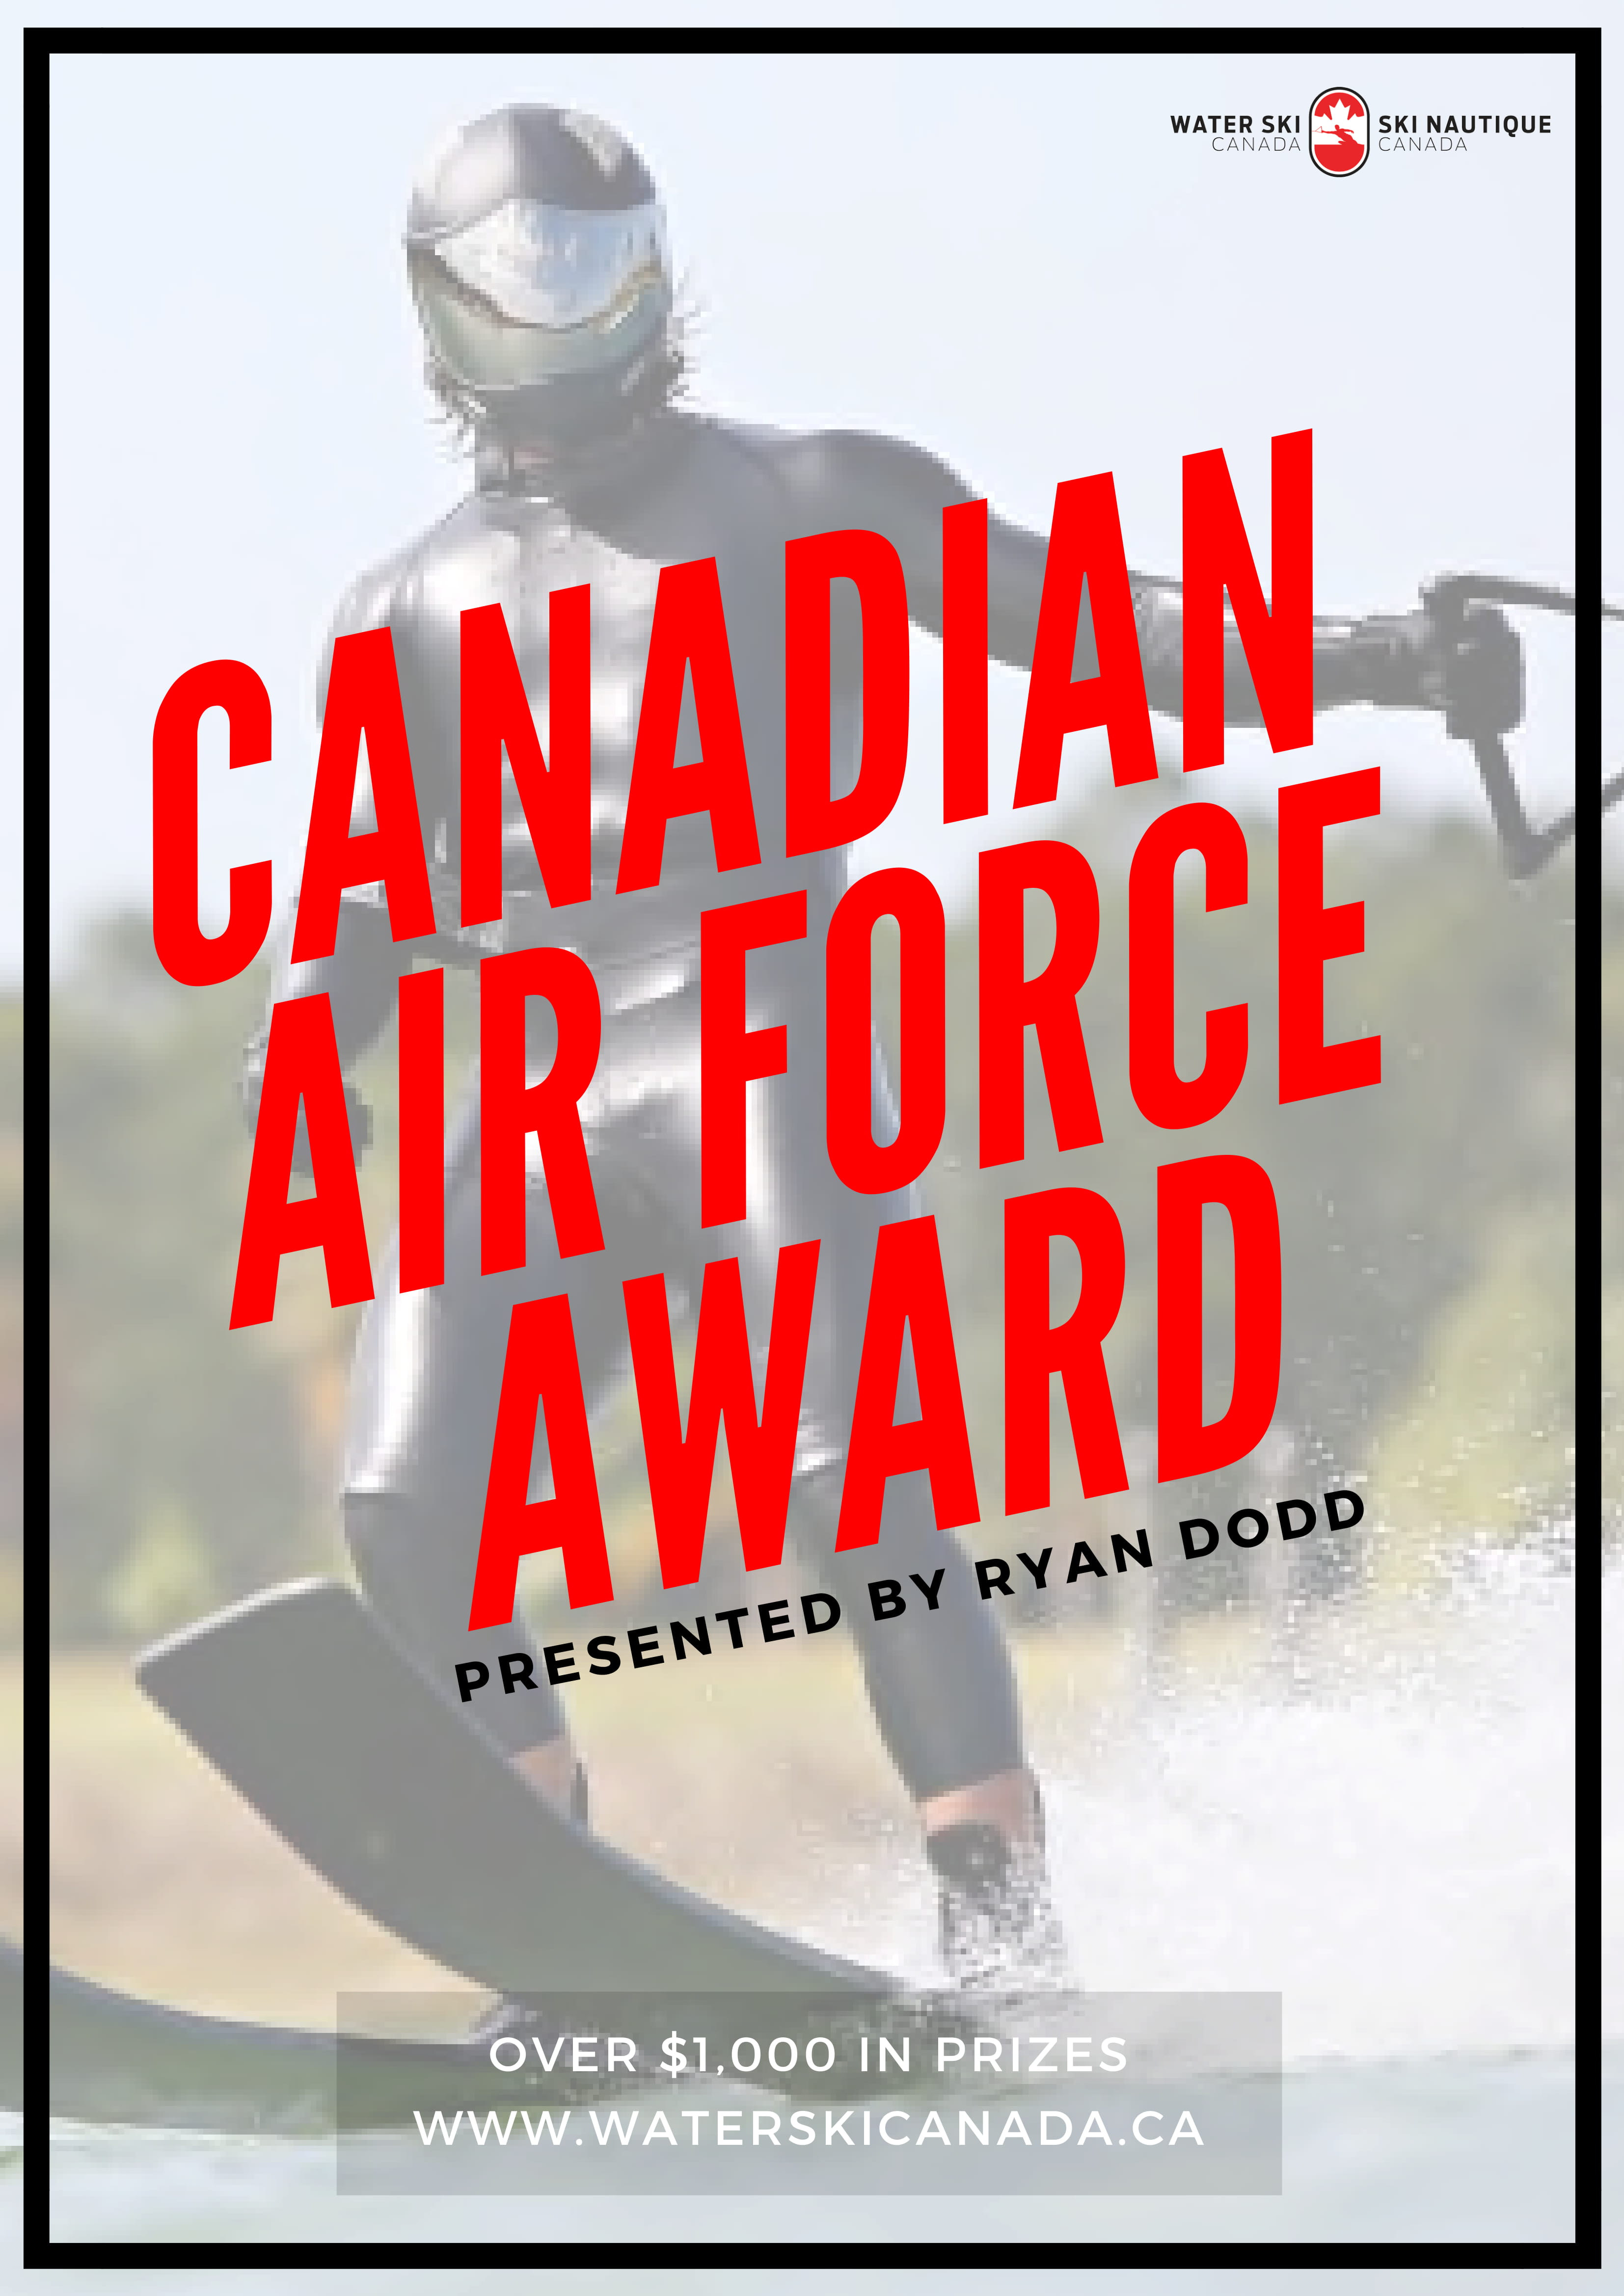 2018 CANADIAN AIR FORCE AWARD – VOTE NOW